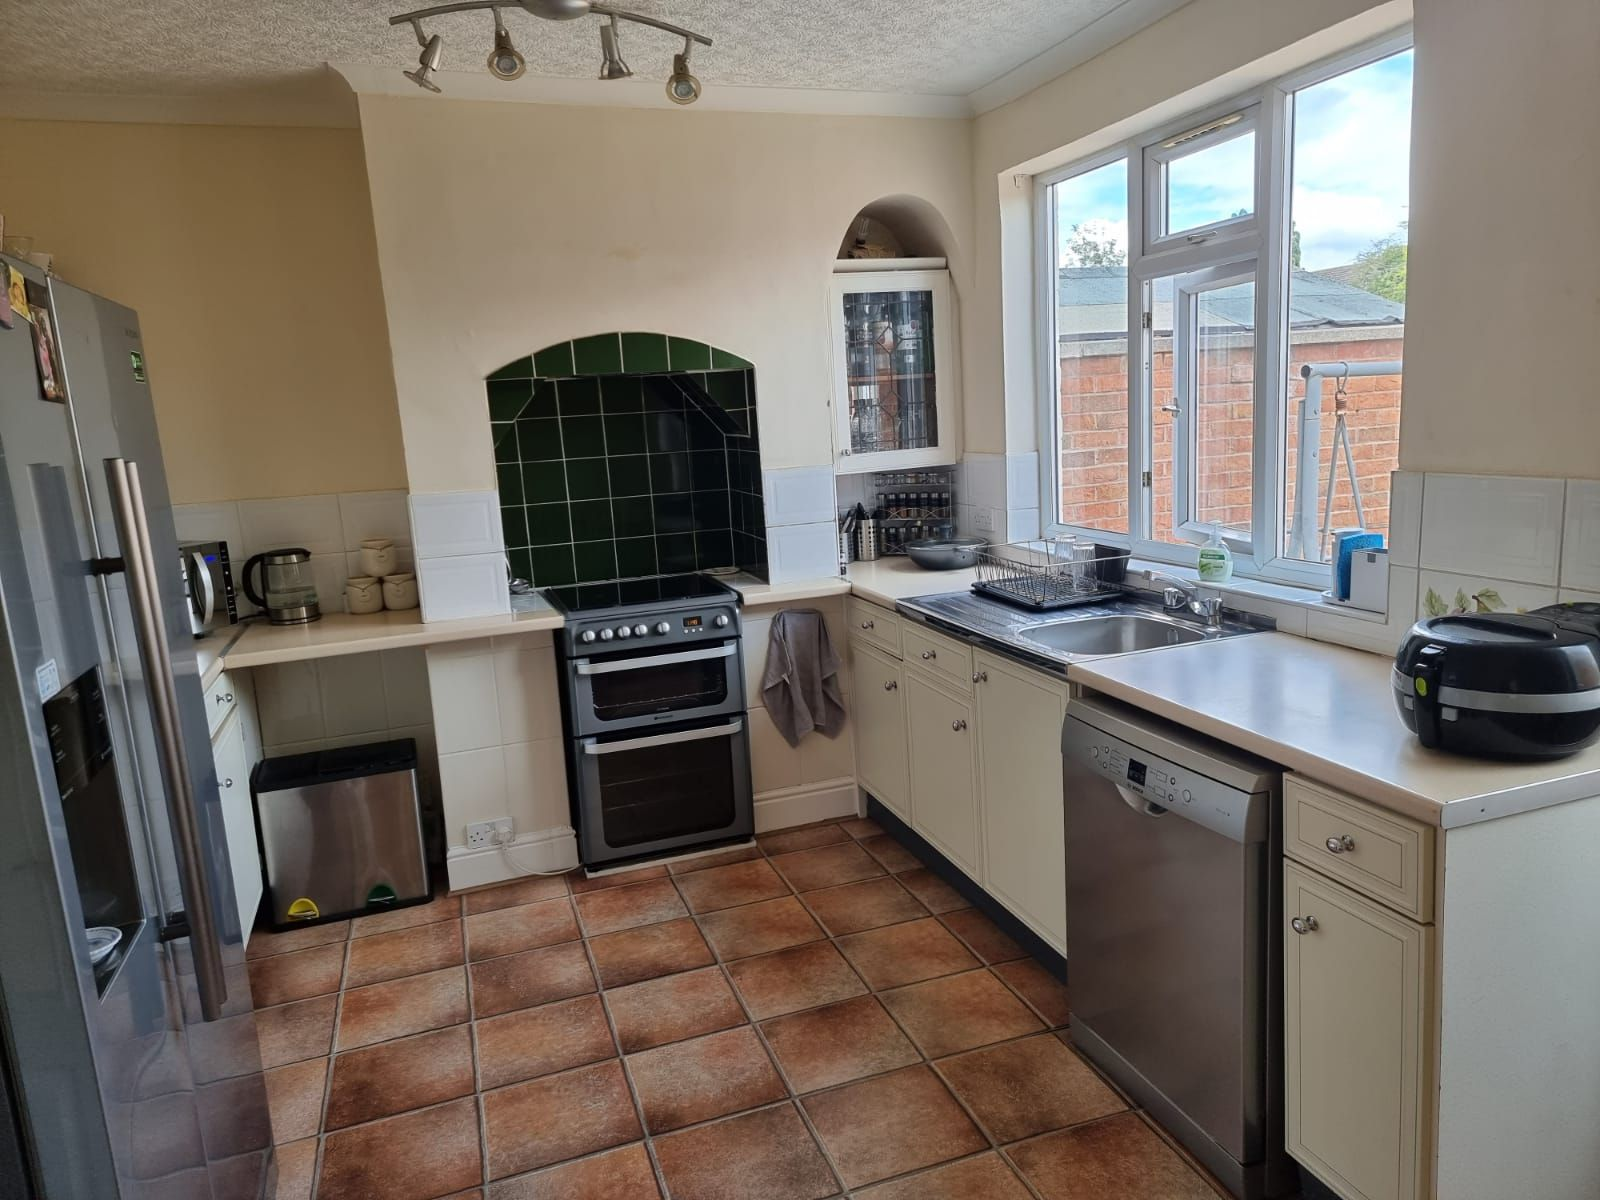 3 bedroom semi-detached house SSTC in Leicester - Photograph 5.